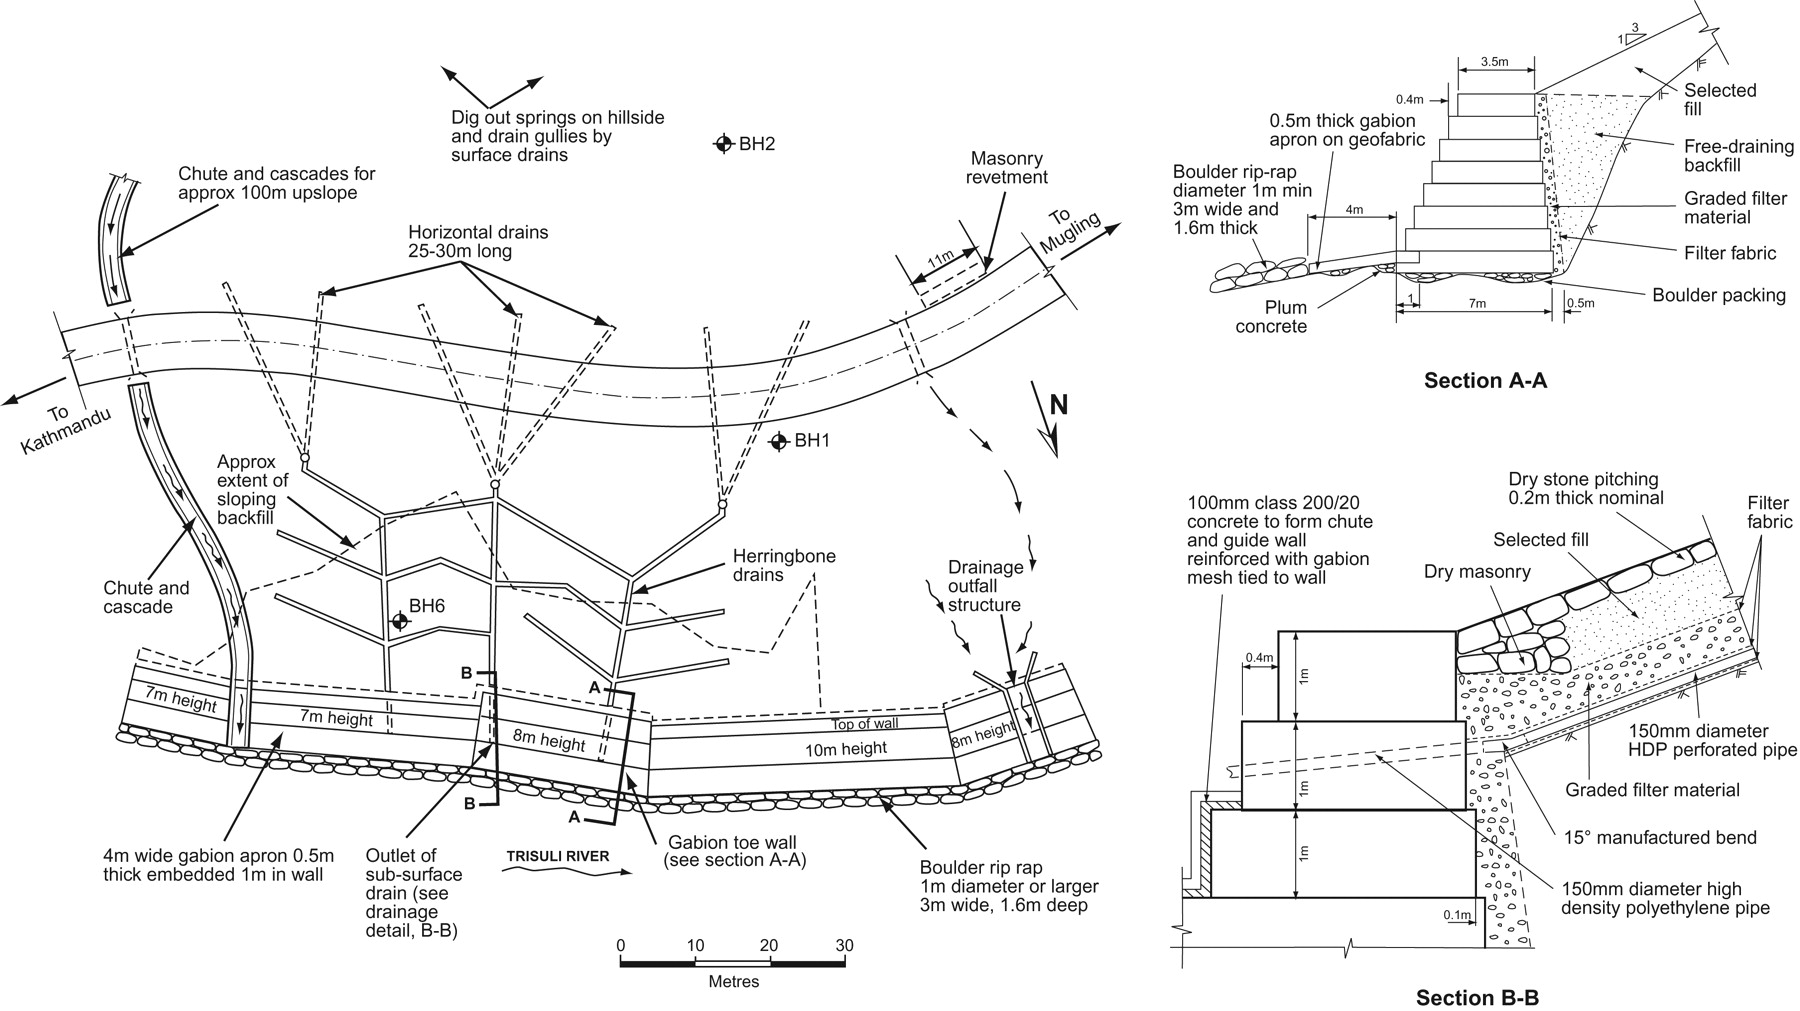 C3 Soil Slope Stabilization Geological Society London Piping Layout Drawings Download Figure Open In New Tab Powerpoint